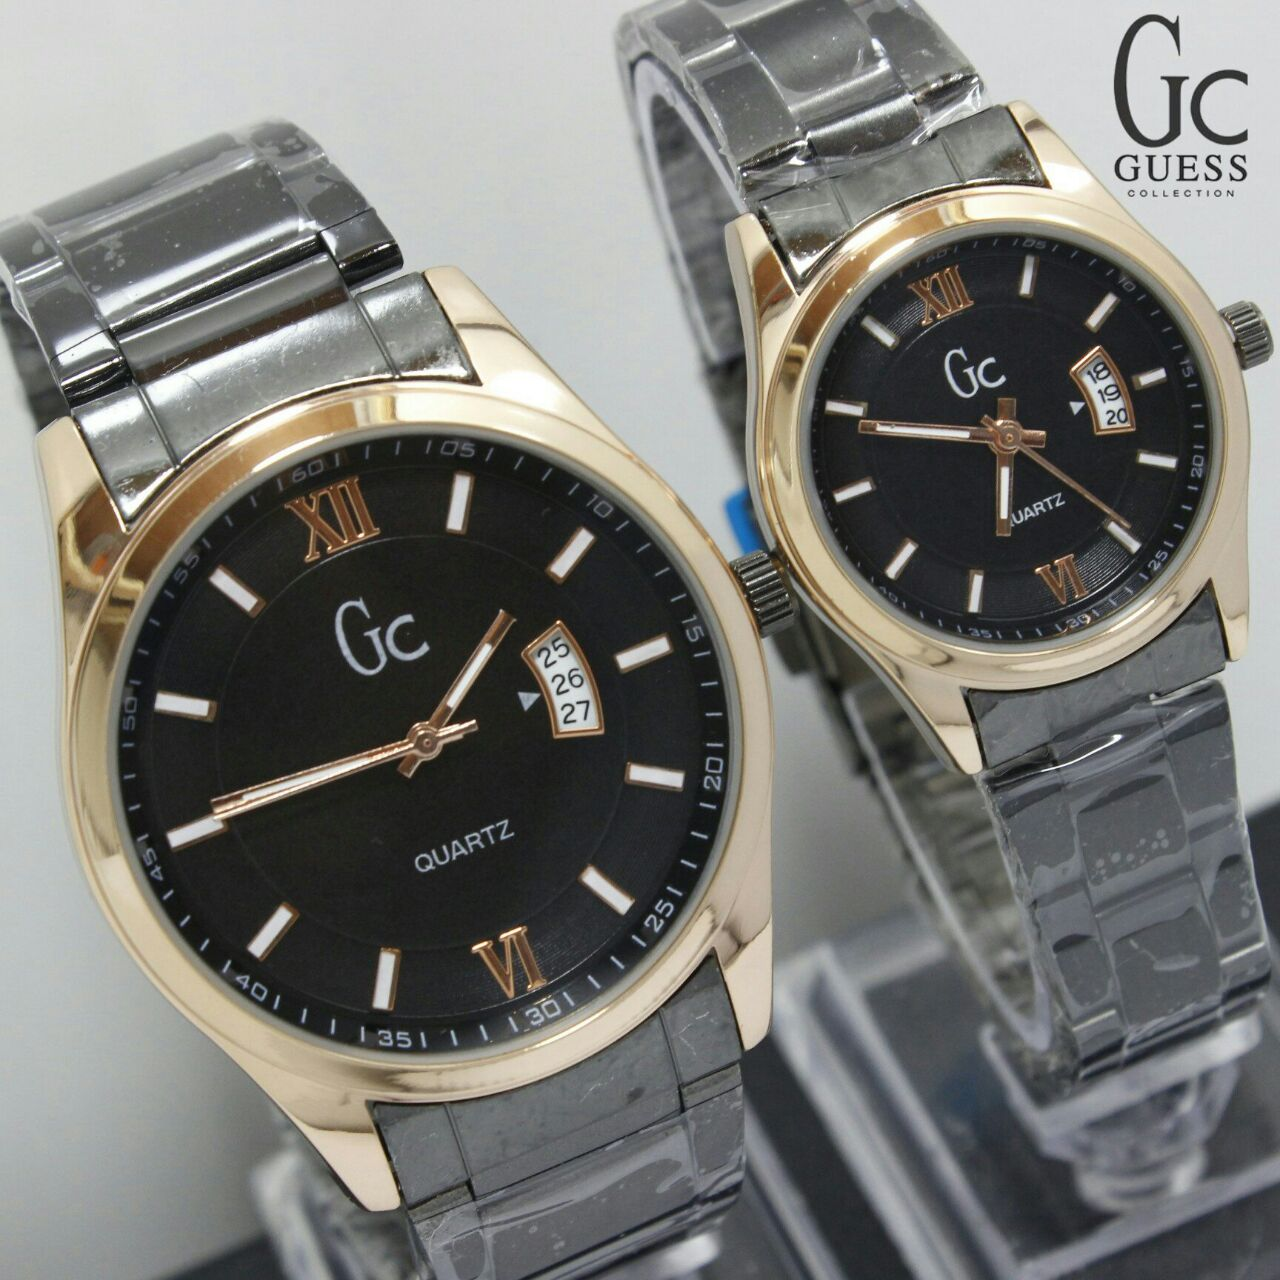 Jam Tangan Couple Fashion Rose Gold Daftar Harga Terkini Dan Swiss Navy Sn5860 Rosegold Stainless Steel Photo